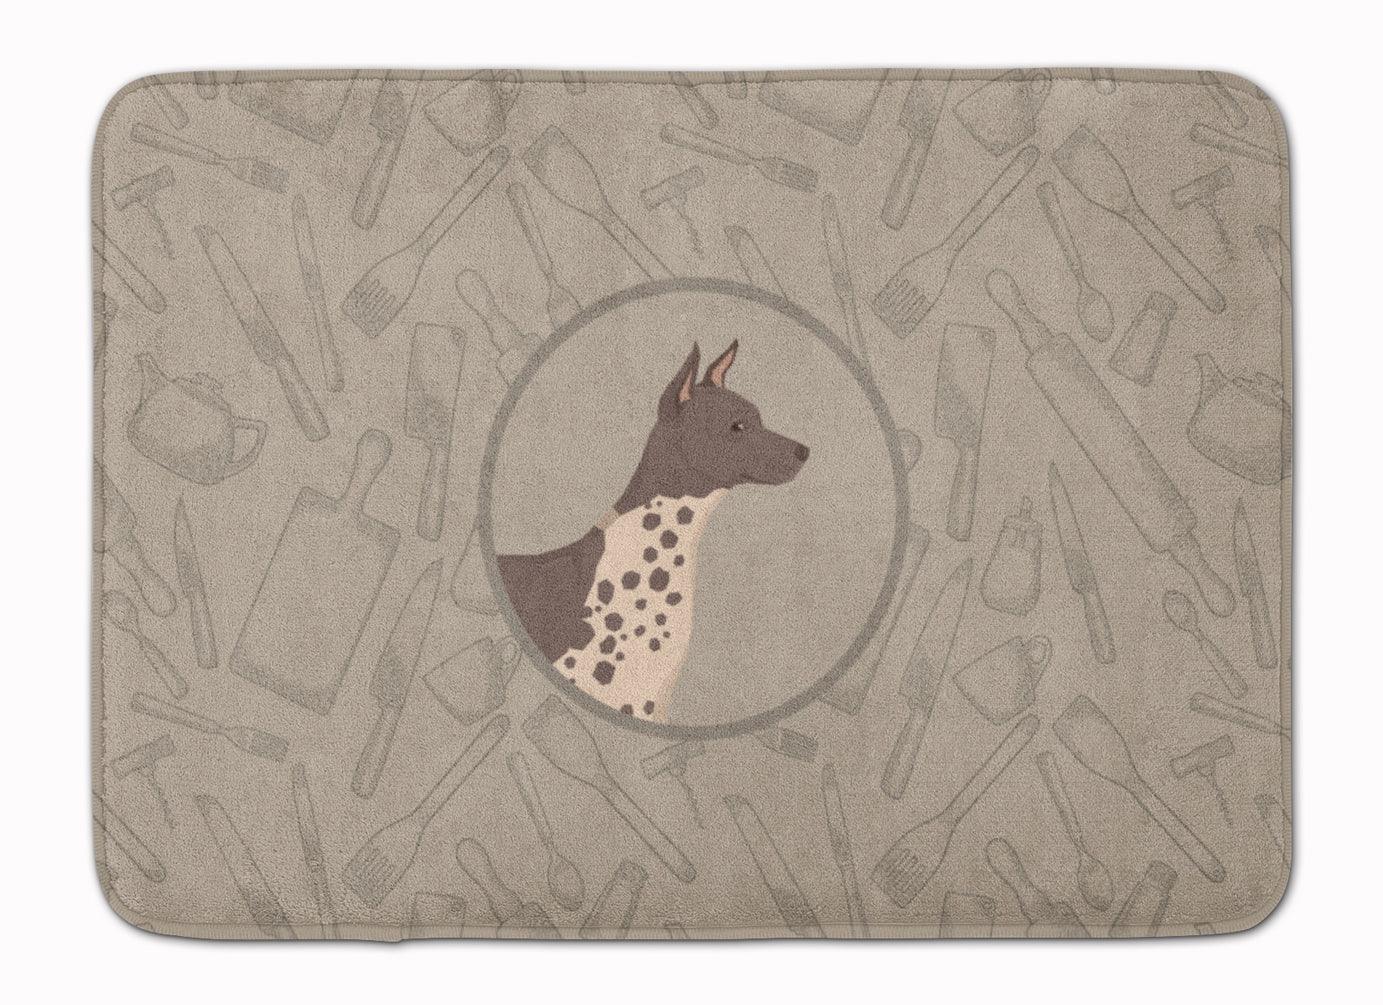 American Hairless Terrier In the Kitchen Machine Washable Memory Foam Mat CK2161RUG by Caroline's Treasures